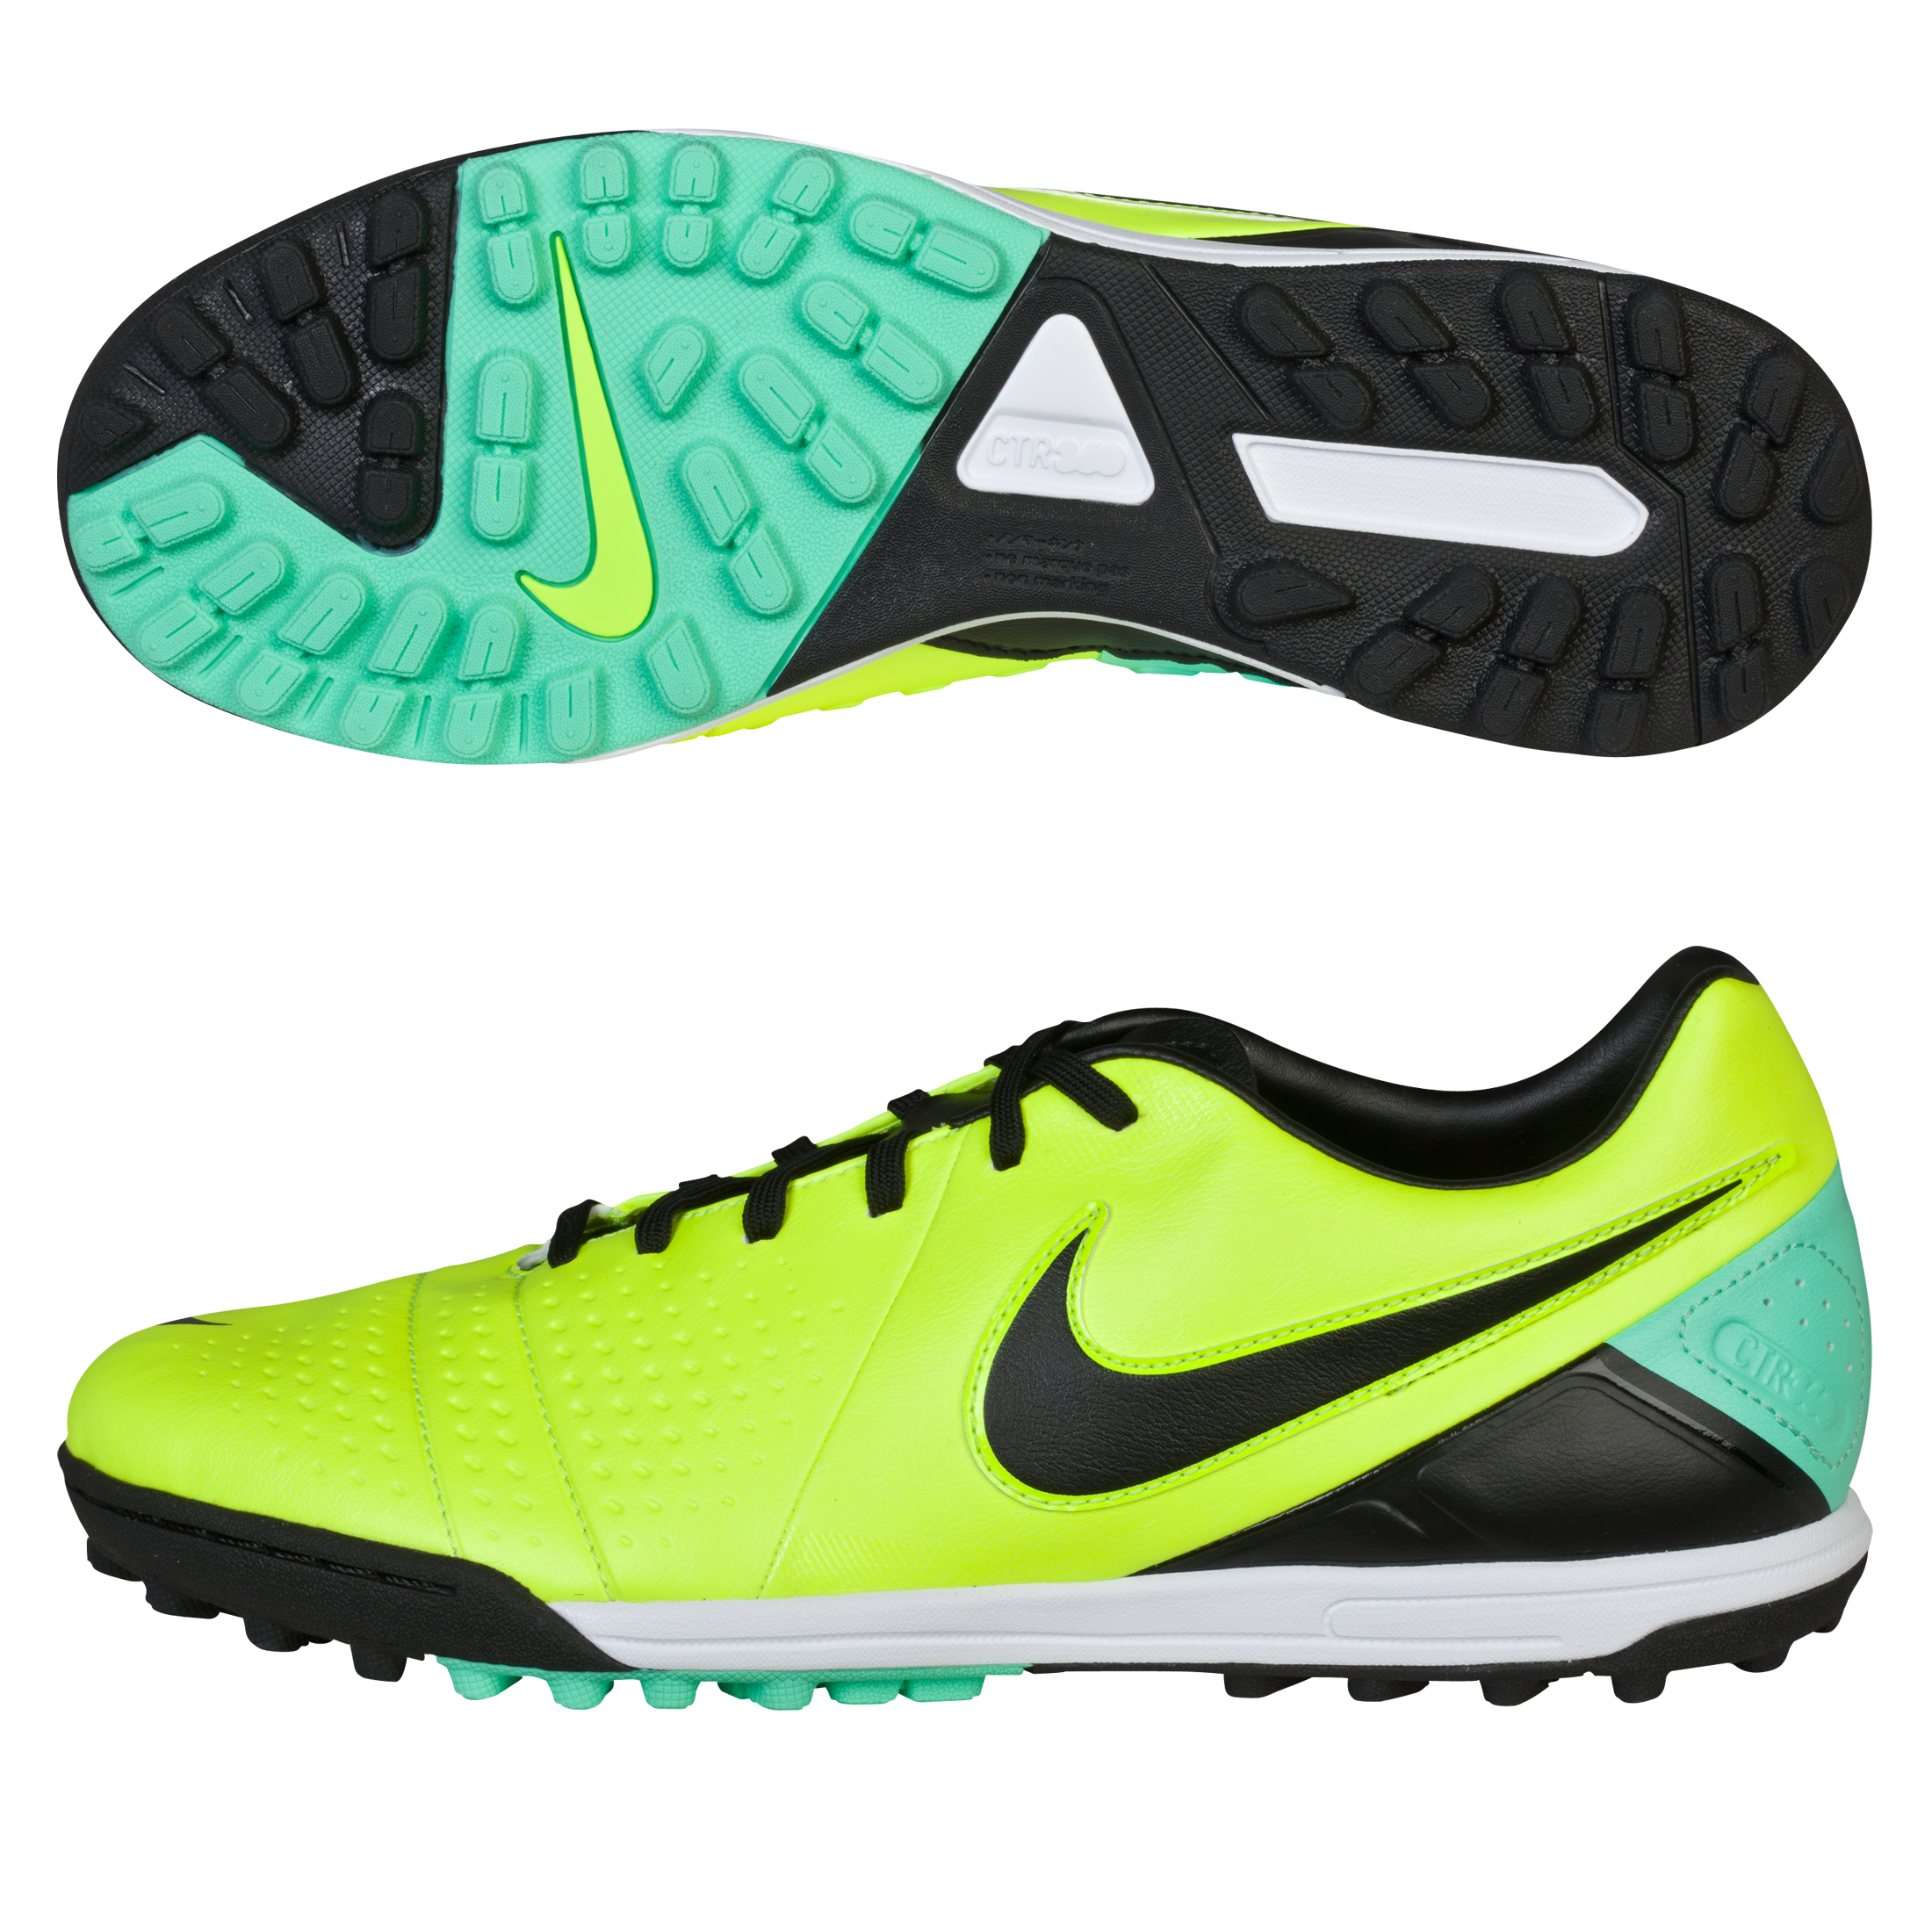 Nike CTR360 Libretto III Astroturf Trainers Yellow